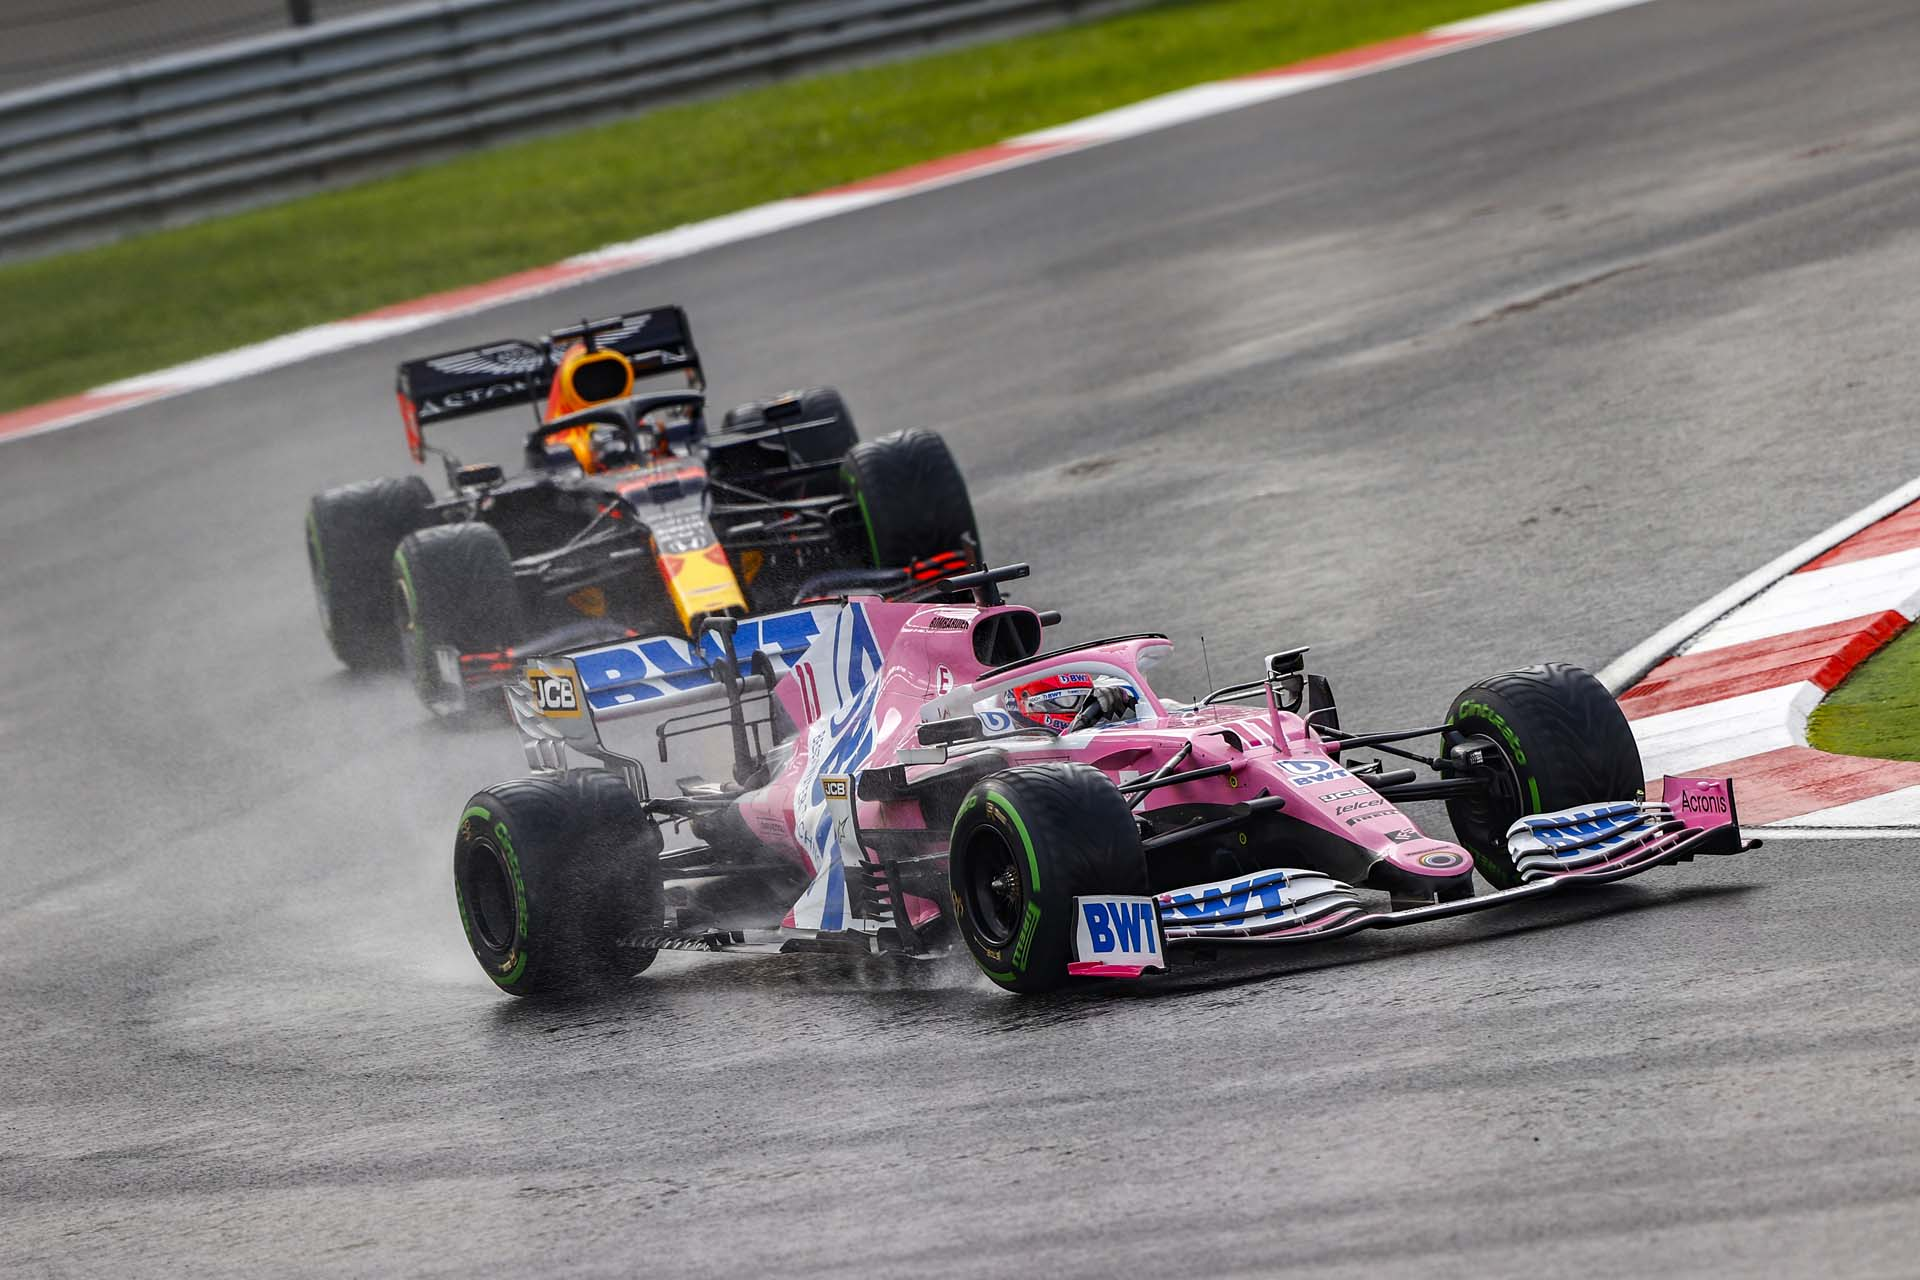 Sergio Perez, Racing Point RP20, leads Max Verstappen, Red Bull Racing RB16